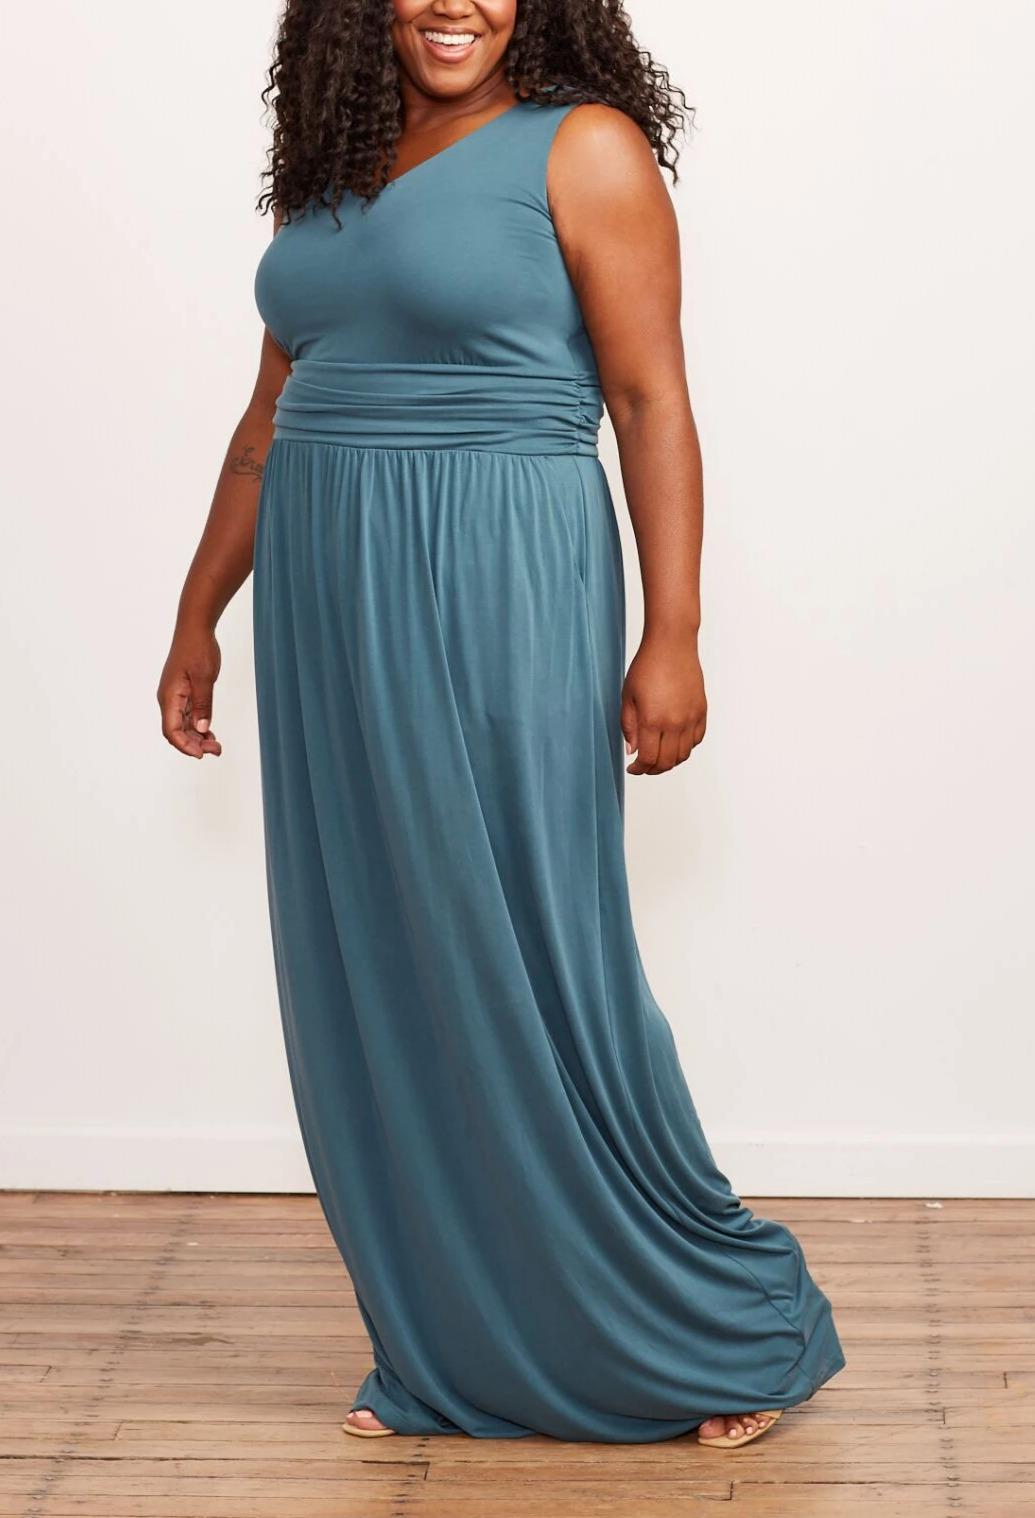 rent brass plus size clothing